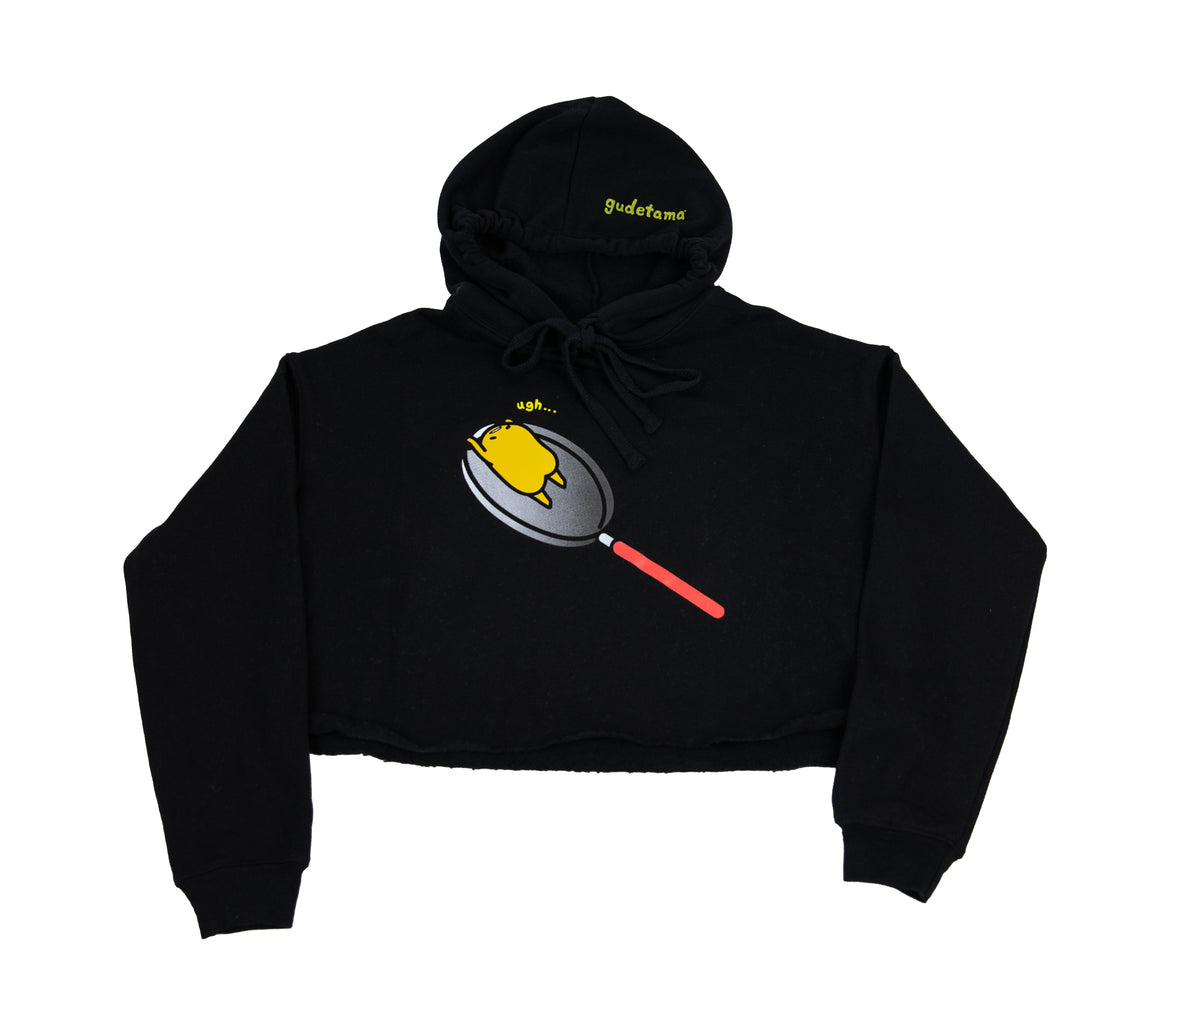 Lazy 80s Gudetama Frying Pan Crop Hoodie